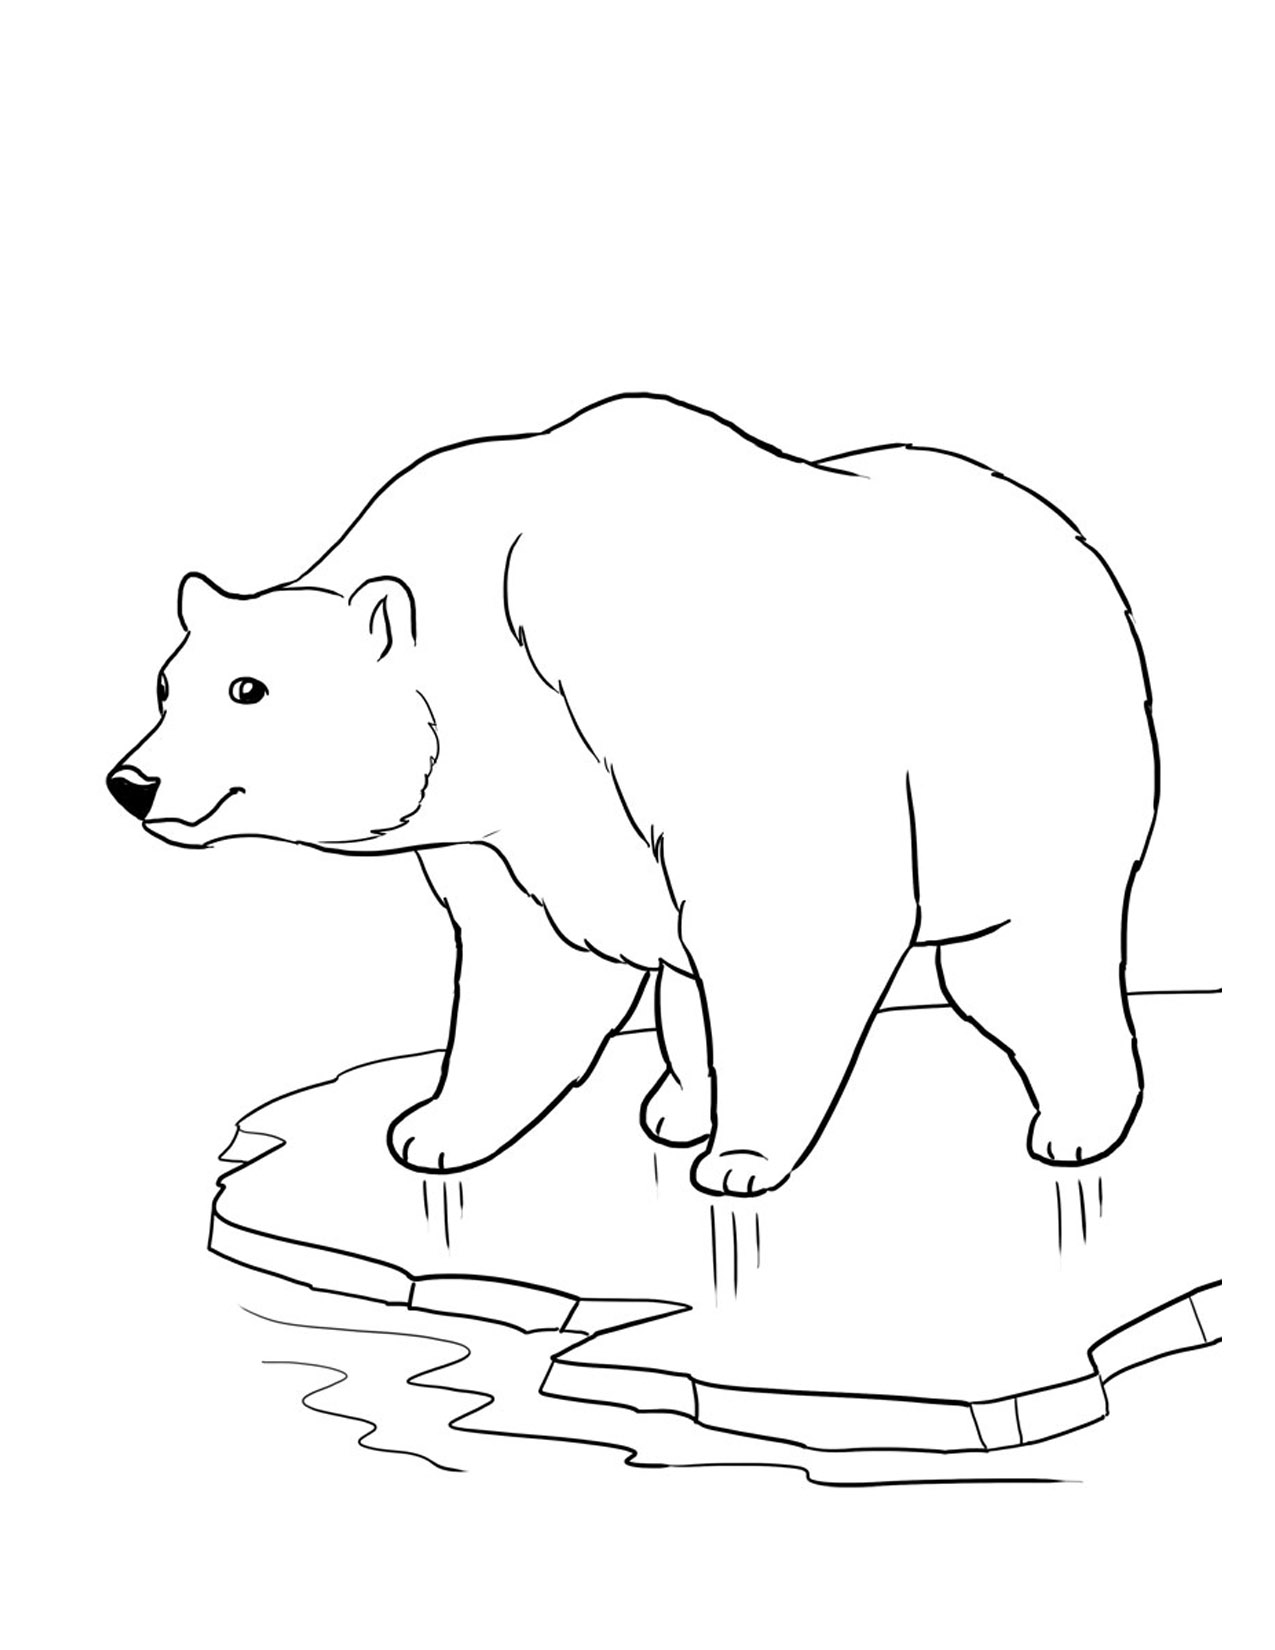 coloring pages of bears to print printable loveable teddy bear coloring page coolest free pages of to bears coloring print